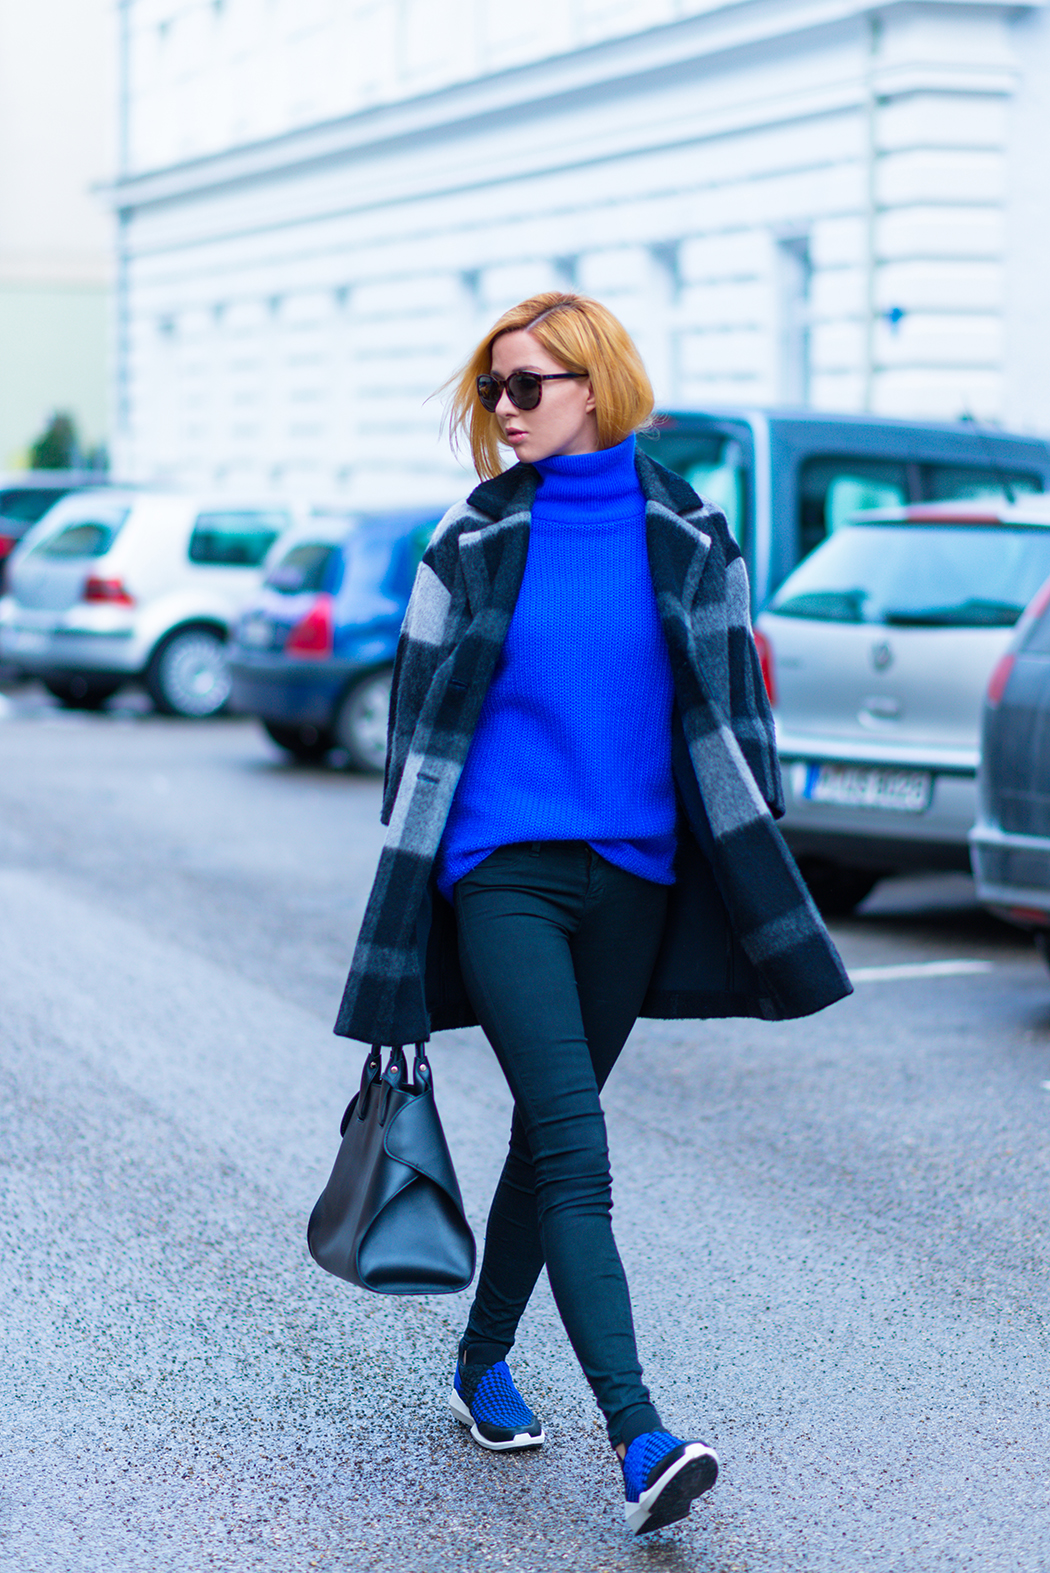 Fashionblog-Fashionblogger-Fashion-Blog-Blogger-Muenchen-Berlin-Deutschland-Fashion_Week-Streetstyle-Look-Lindarella-1-web